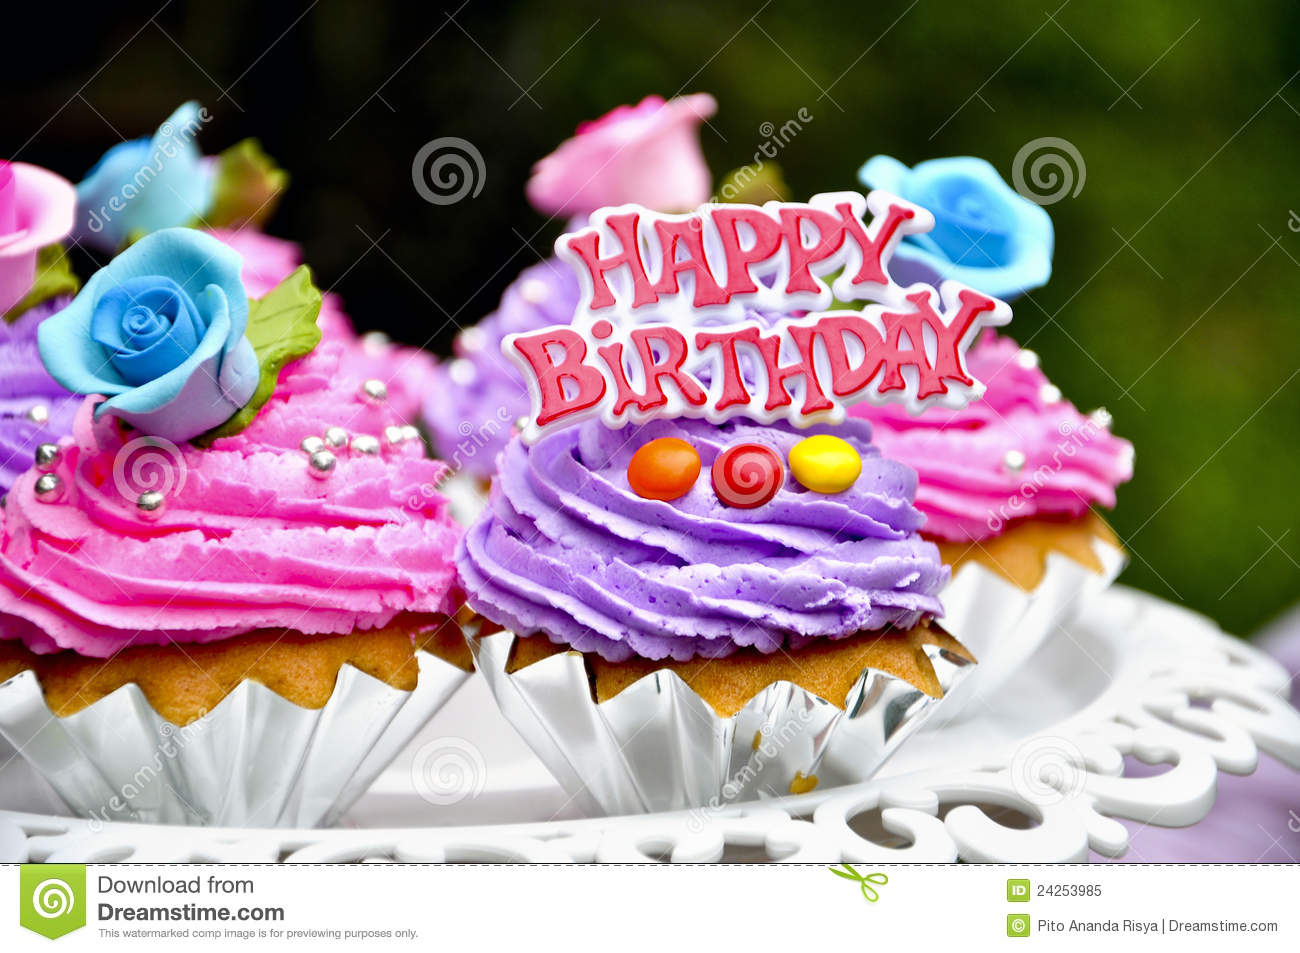 Happy birthday cakes stock image Image of goodies festive 24253985